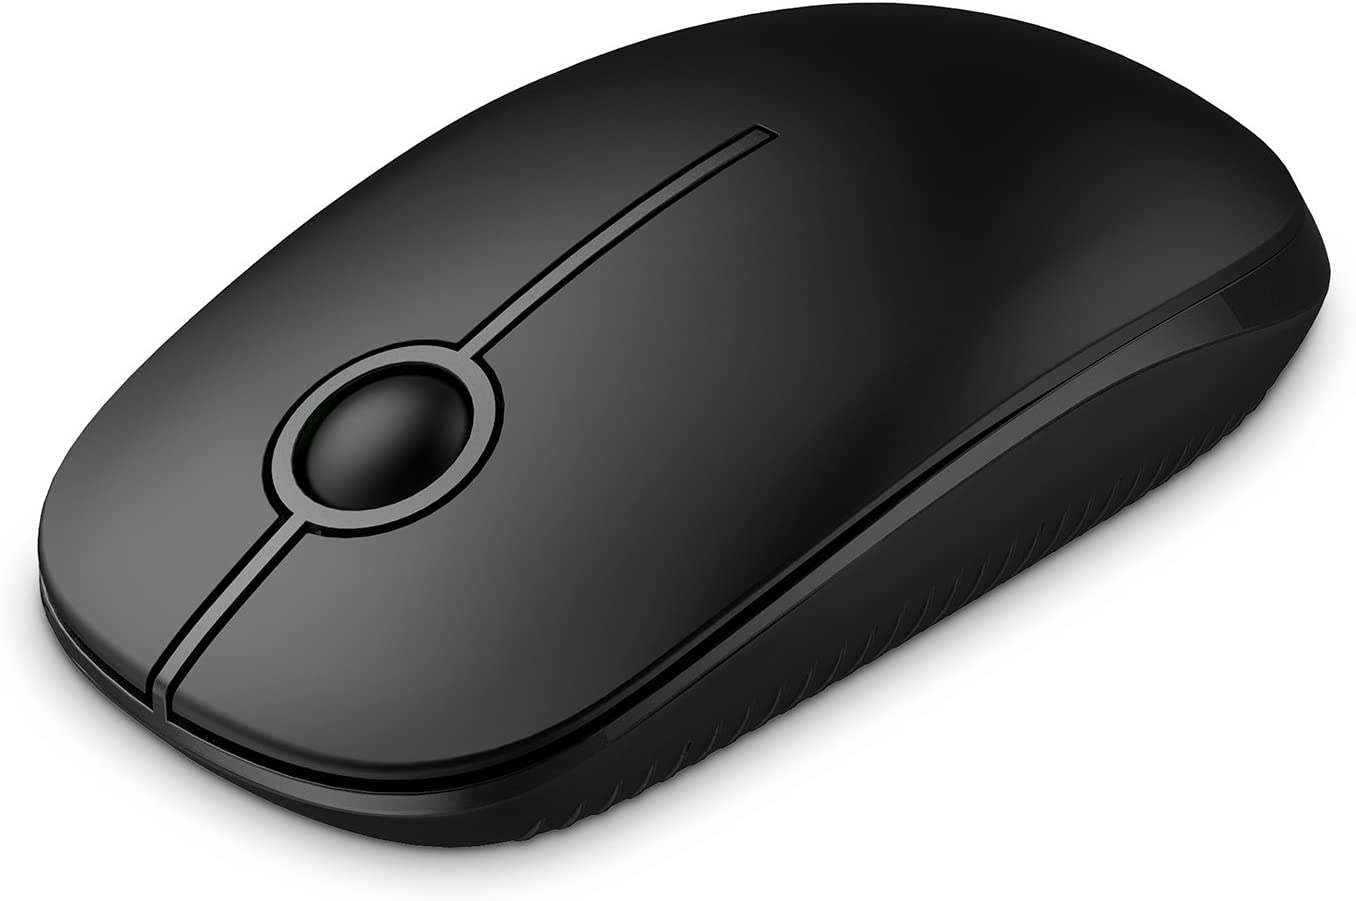 Jelly Comb 2.4G Slim Wireless Mouse with Nano Receiver, Less Noise, Portable Mobile Optical Mice for Notebook, PC, Laptop, Computer, MacBook - Black